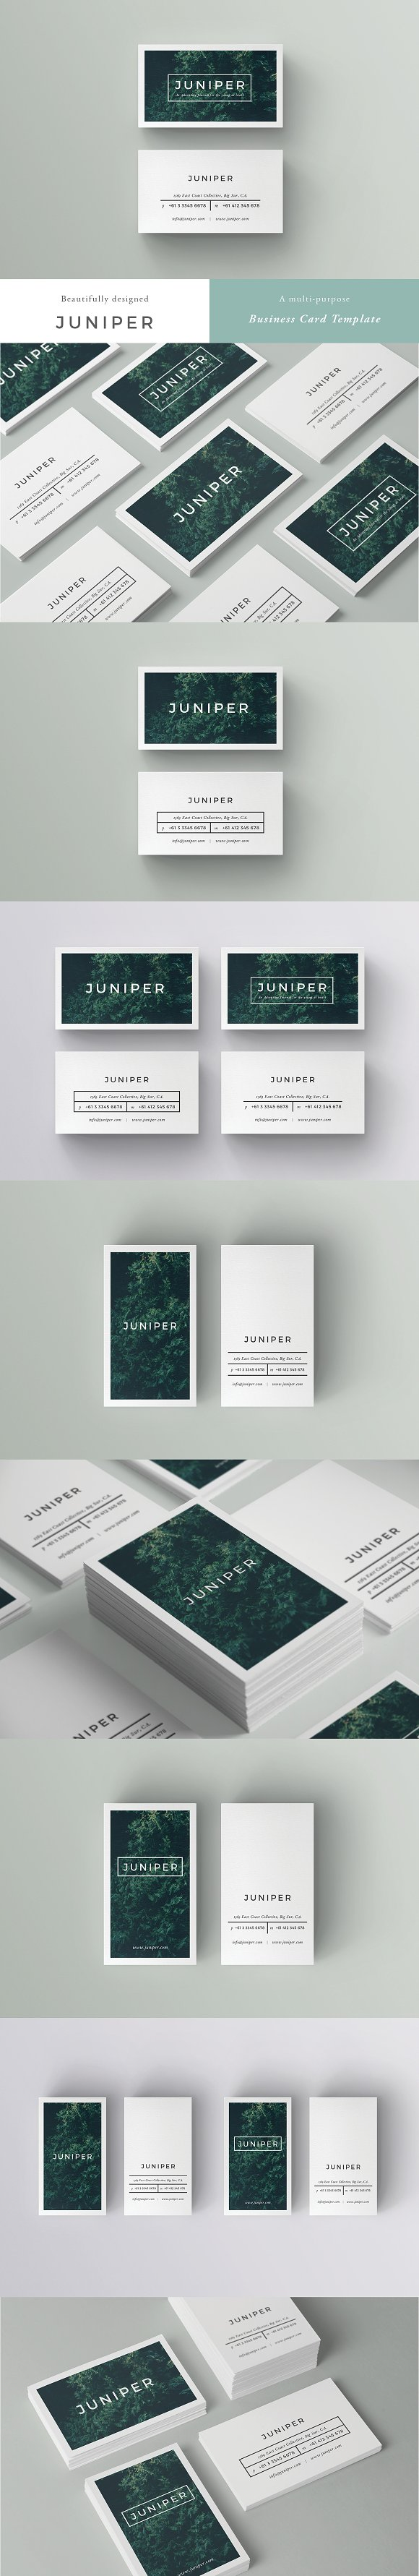 How to design impressive business cards using templates creative j u n i p e r business card template reheart Images